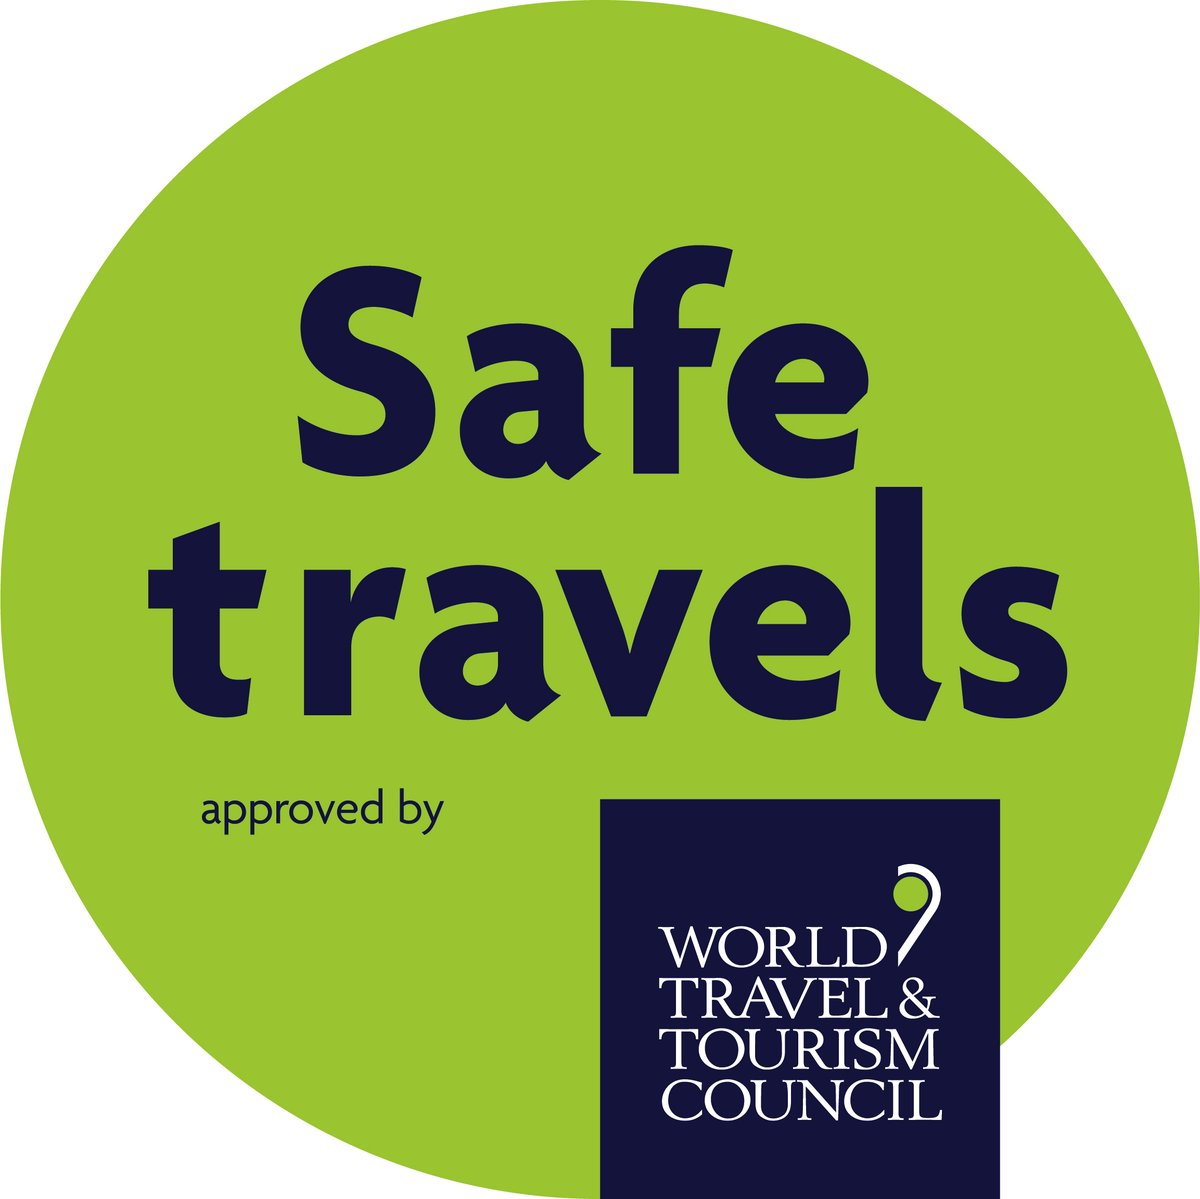 #WTTC launches Safe Travels #protocols for #aviation, #airports, #MICE and #TourOperators @WTTC @GGuevaraM  #SafeTravels @FAEVYT @ABCMundial  https://abcmundial.com/en/2020/05/29/world/tourism/wttc-launches-safe-travels-protocols-for-aviation-airports-mice-and-tour-operators…pic.twitter.com/BCw2e7B2gU